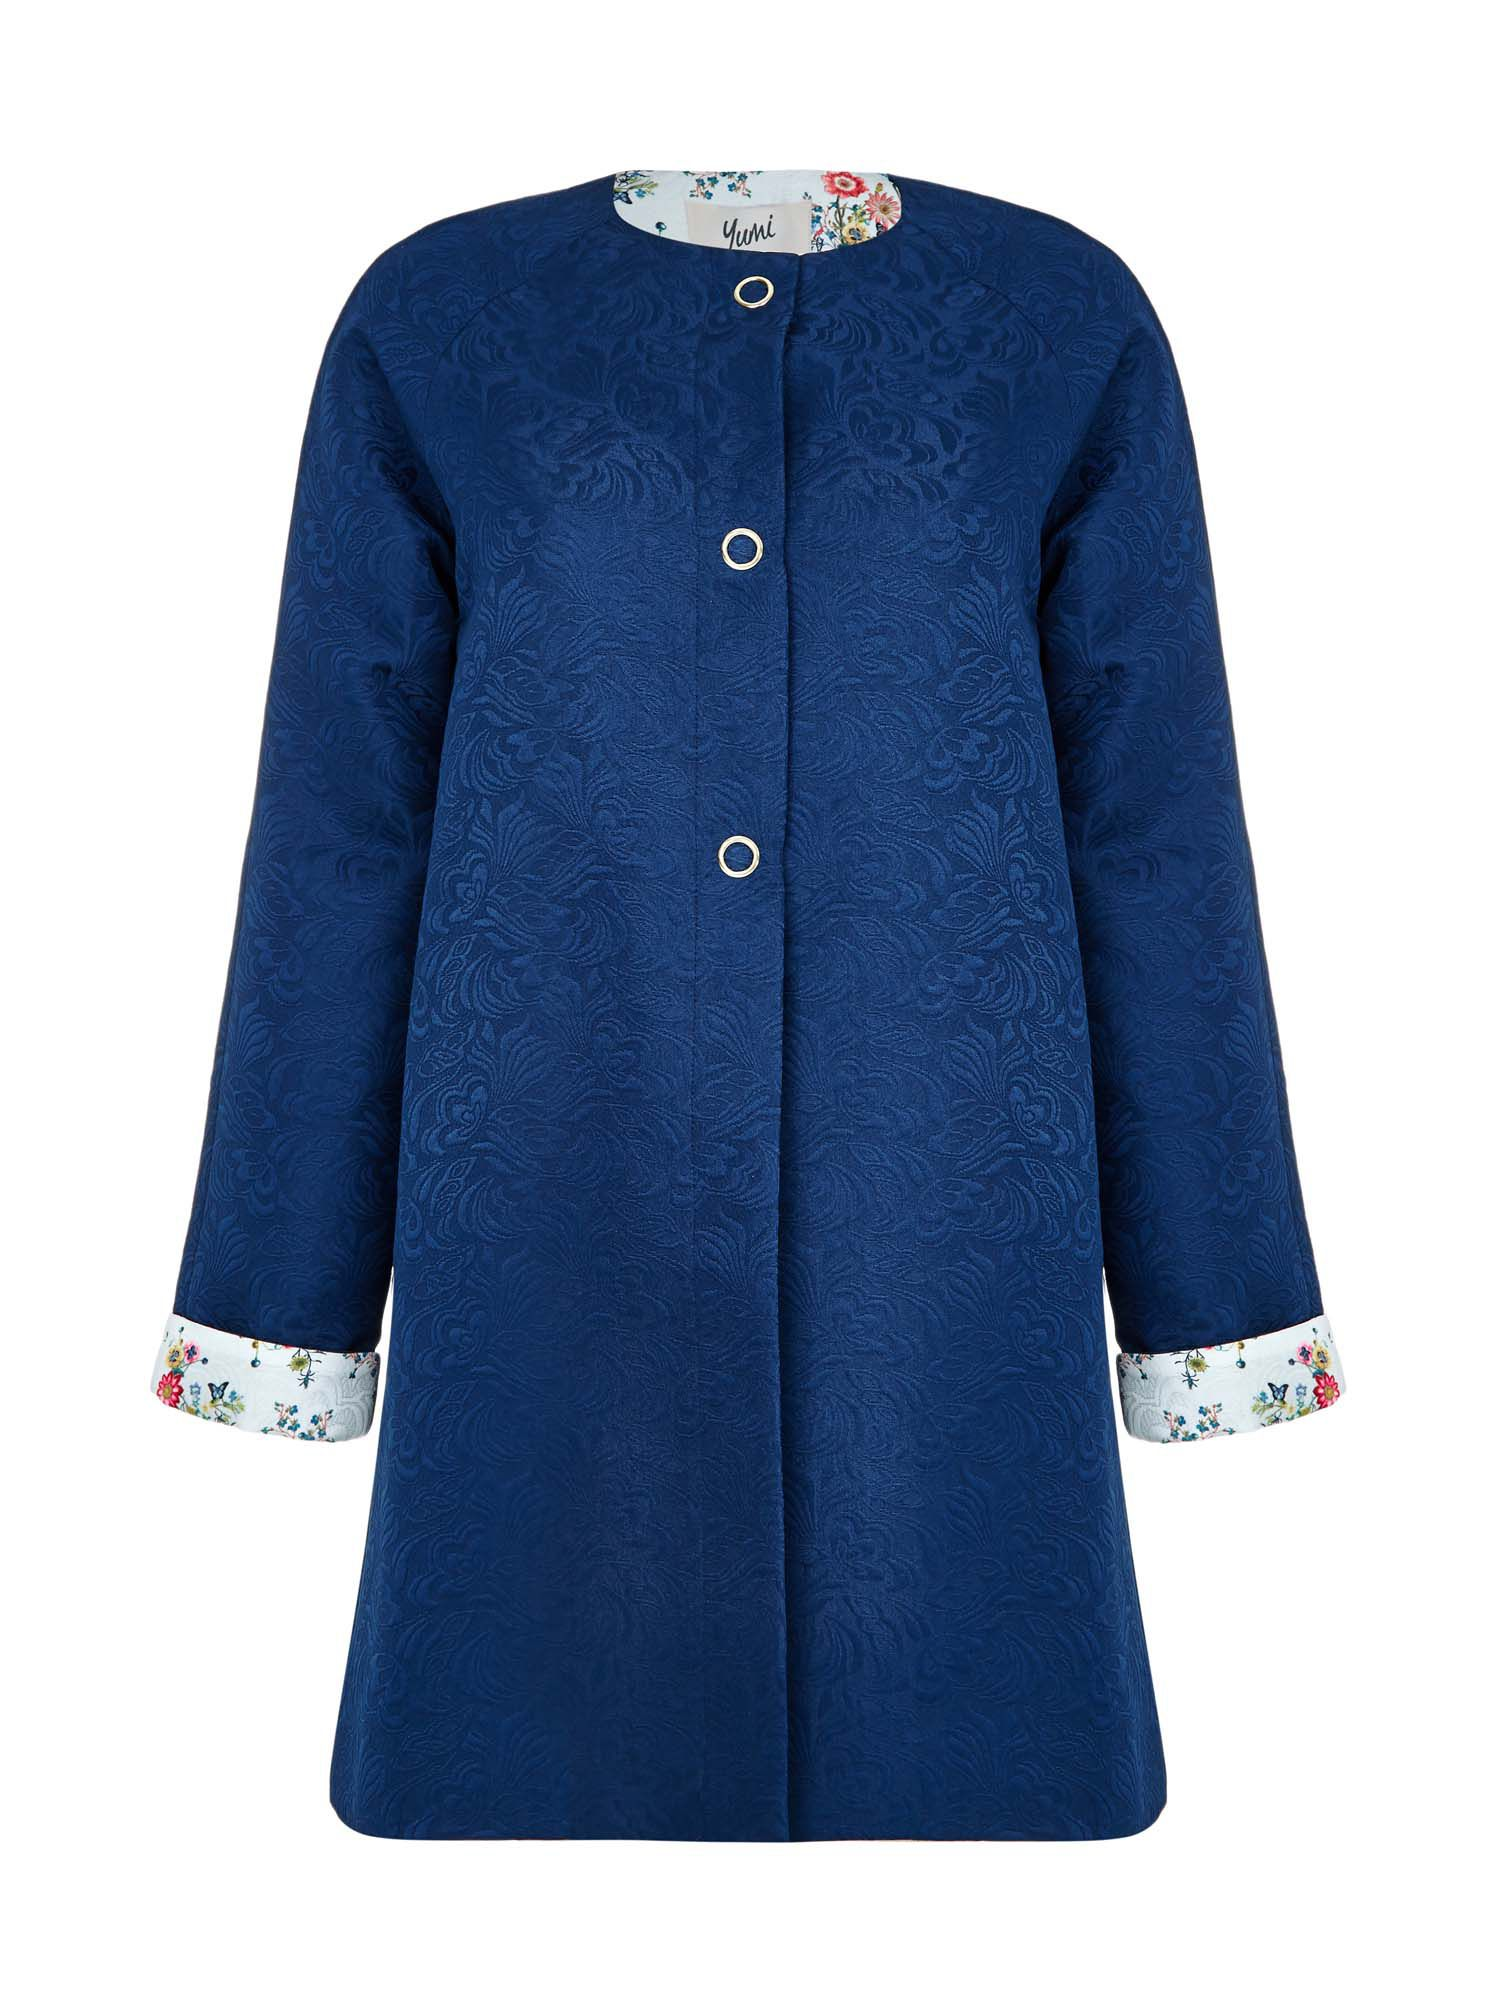 Yumi Botanical Lace Jacquard Coat, Blue